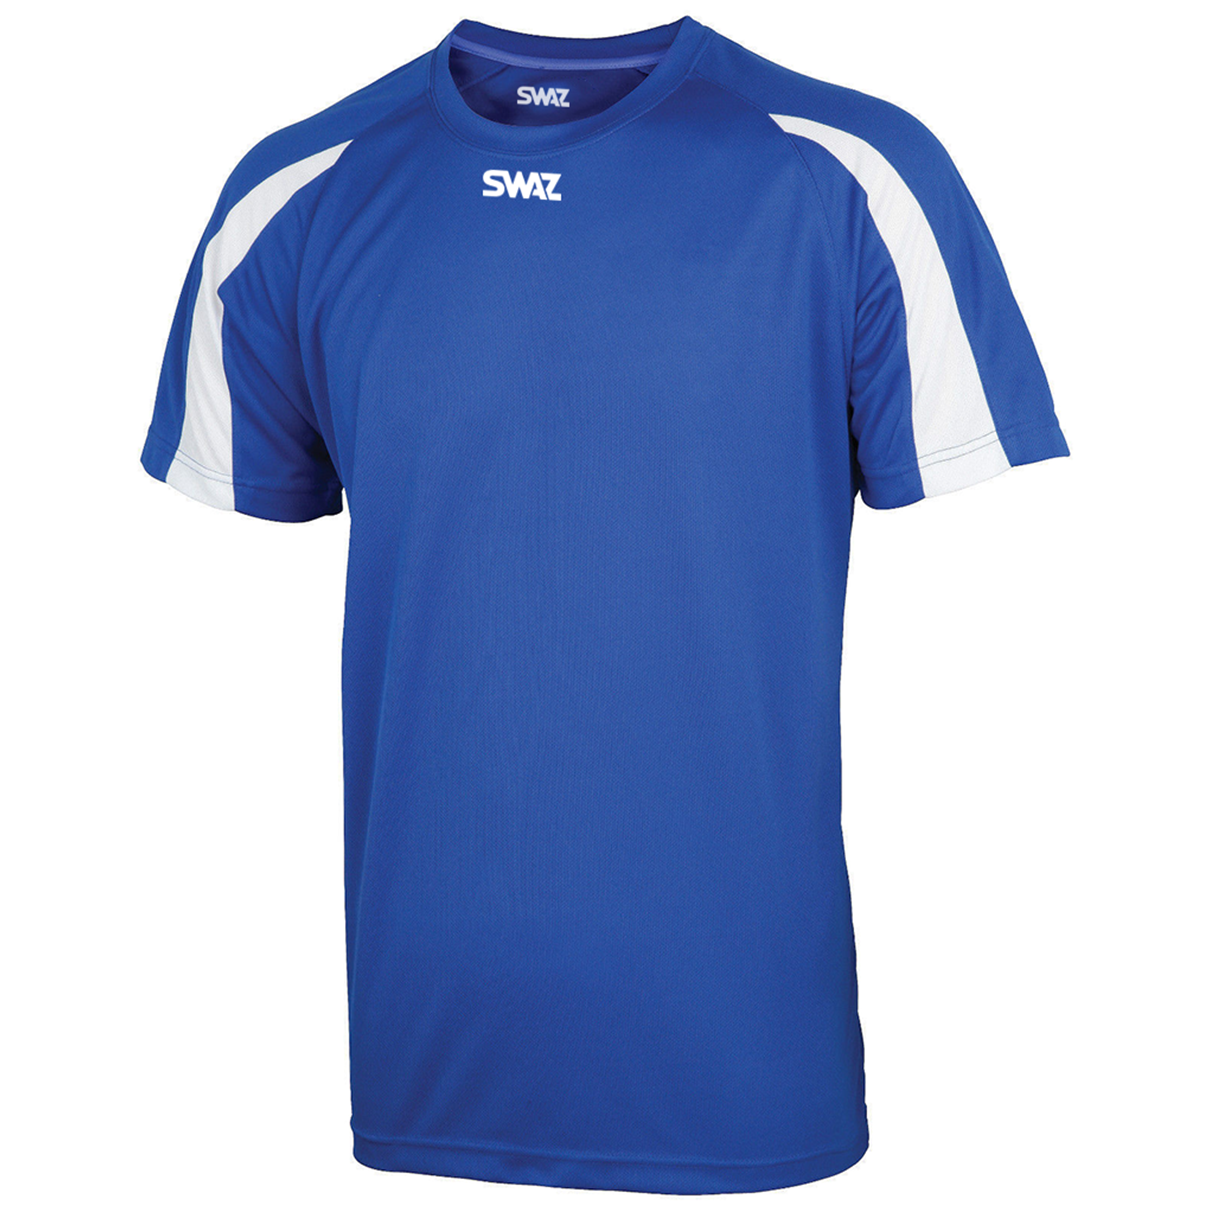 SWAZ Premier Training T-Shirt – Royal/White